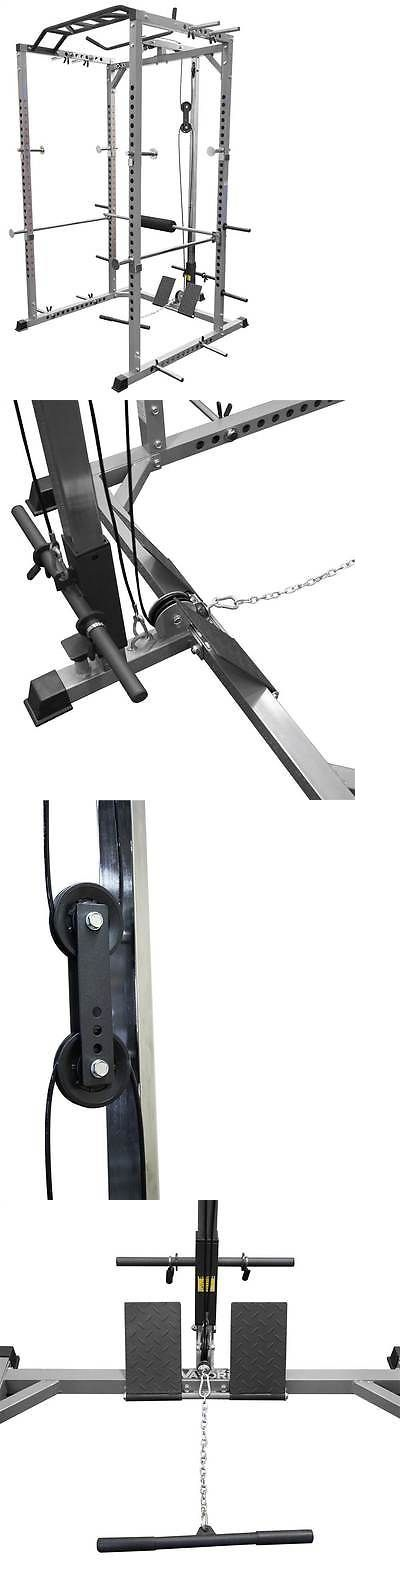 Home Gym Attachments 179813: Lat Pull For Heavy Duty Power Cage [Id 3416694] BUY IT NOW ONLY: $203.39